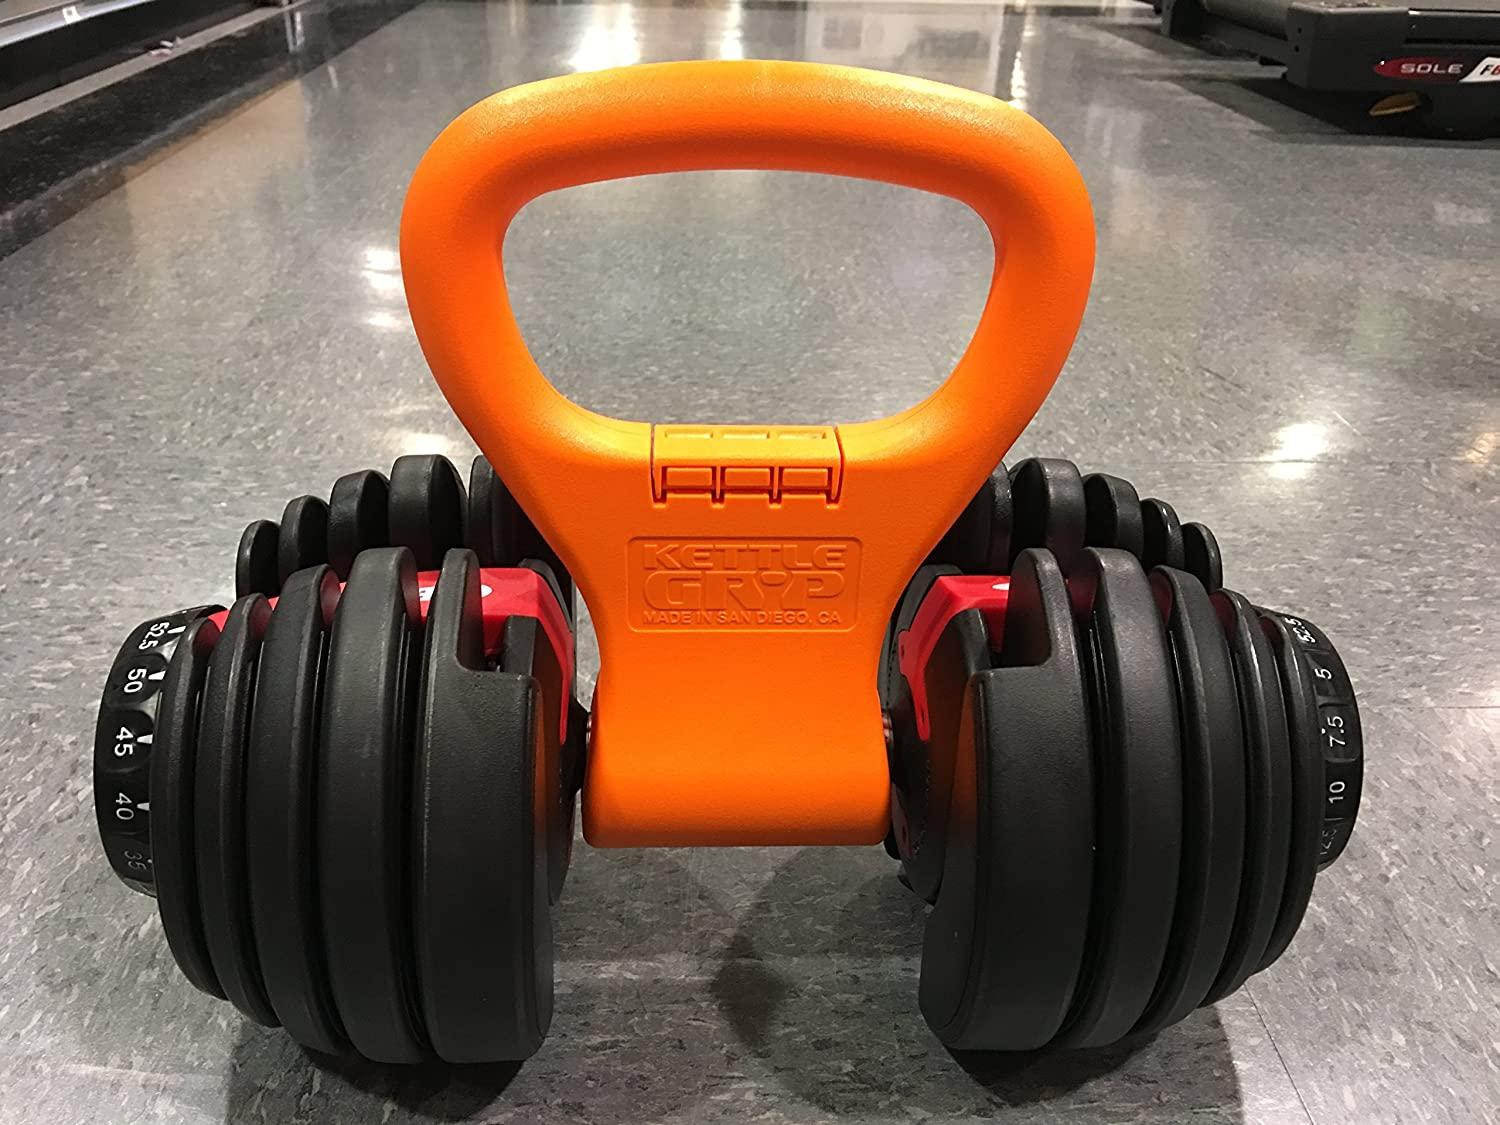 Kettle Gryp - Kettlebell Adjustable Portable Weight Grip Travel Workout Equipment Gear for Gym Bag